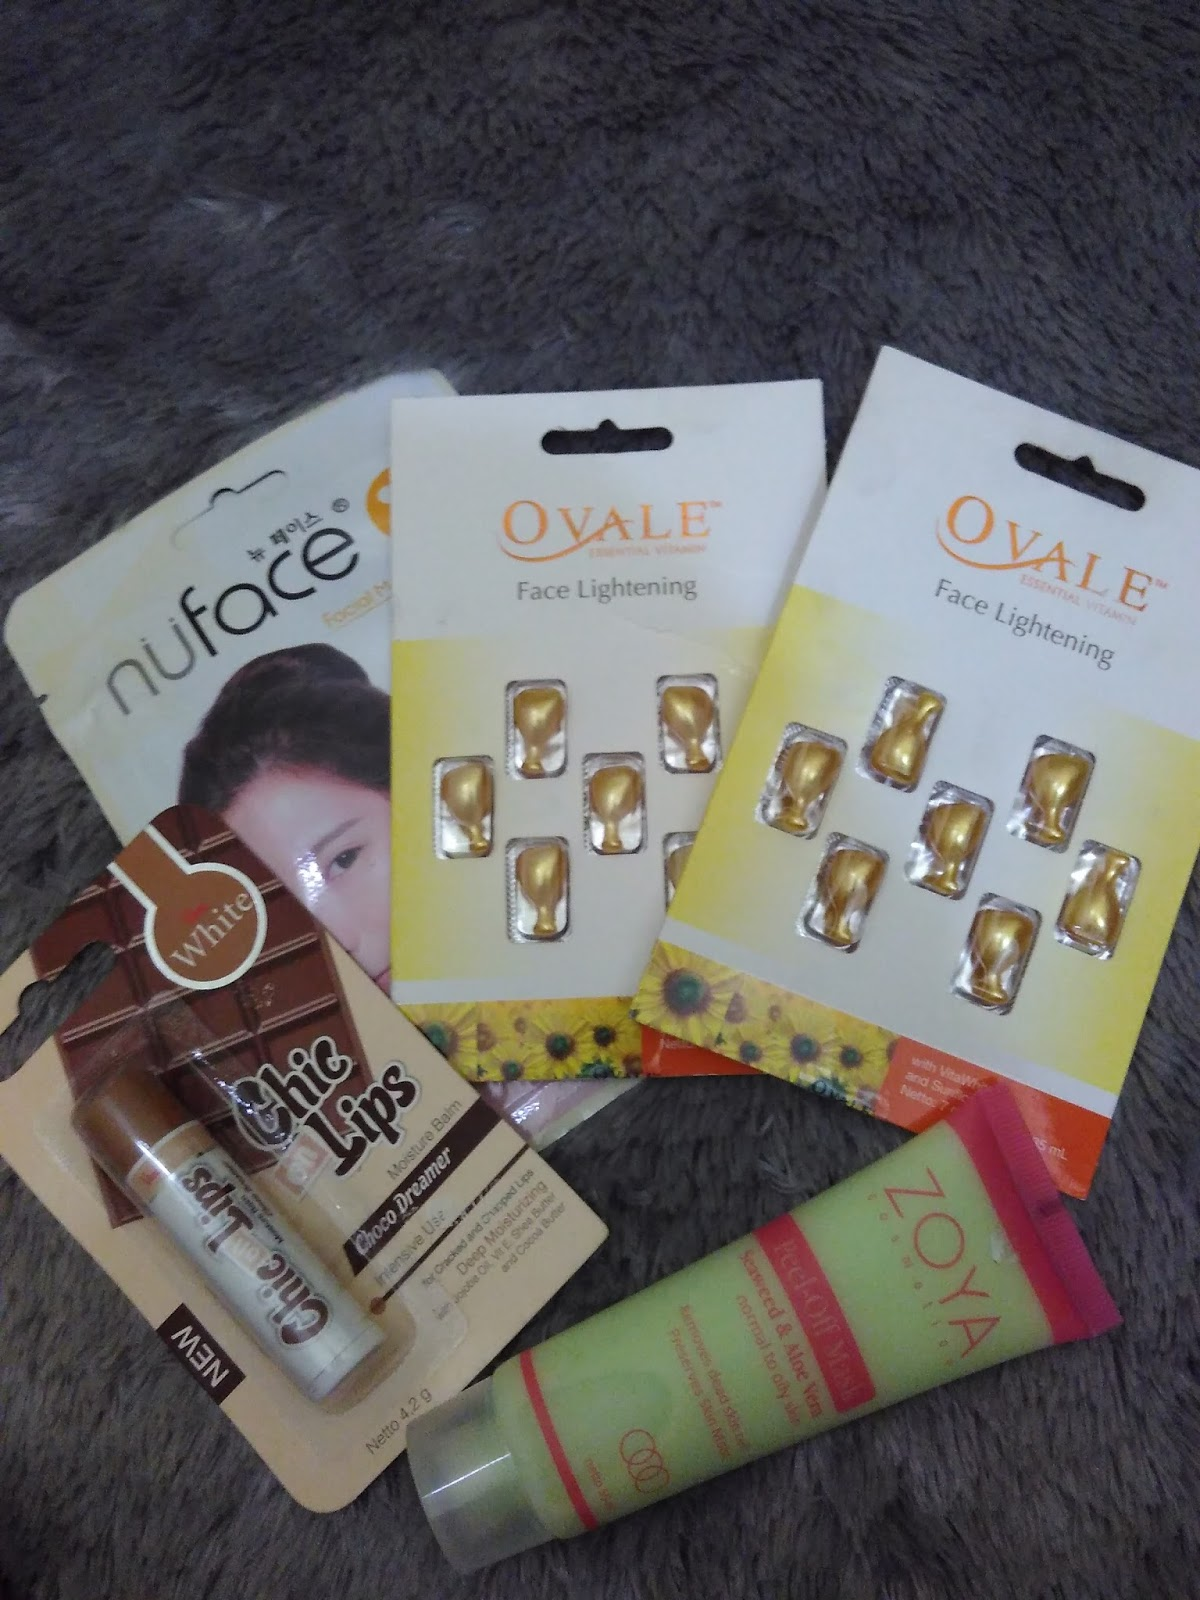 Riris Blog Images Skin Care Facial Mask Masker Wajah Korea Good Quality This Time I Wanna Share To You About My Masks Lately Yaps If Usually Watches Korean Skincare Routine Youll Find That They Uses Oftenly